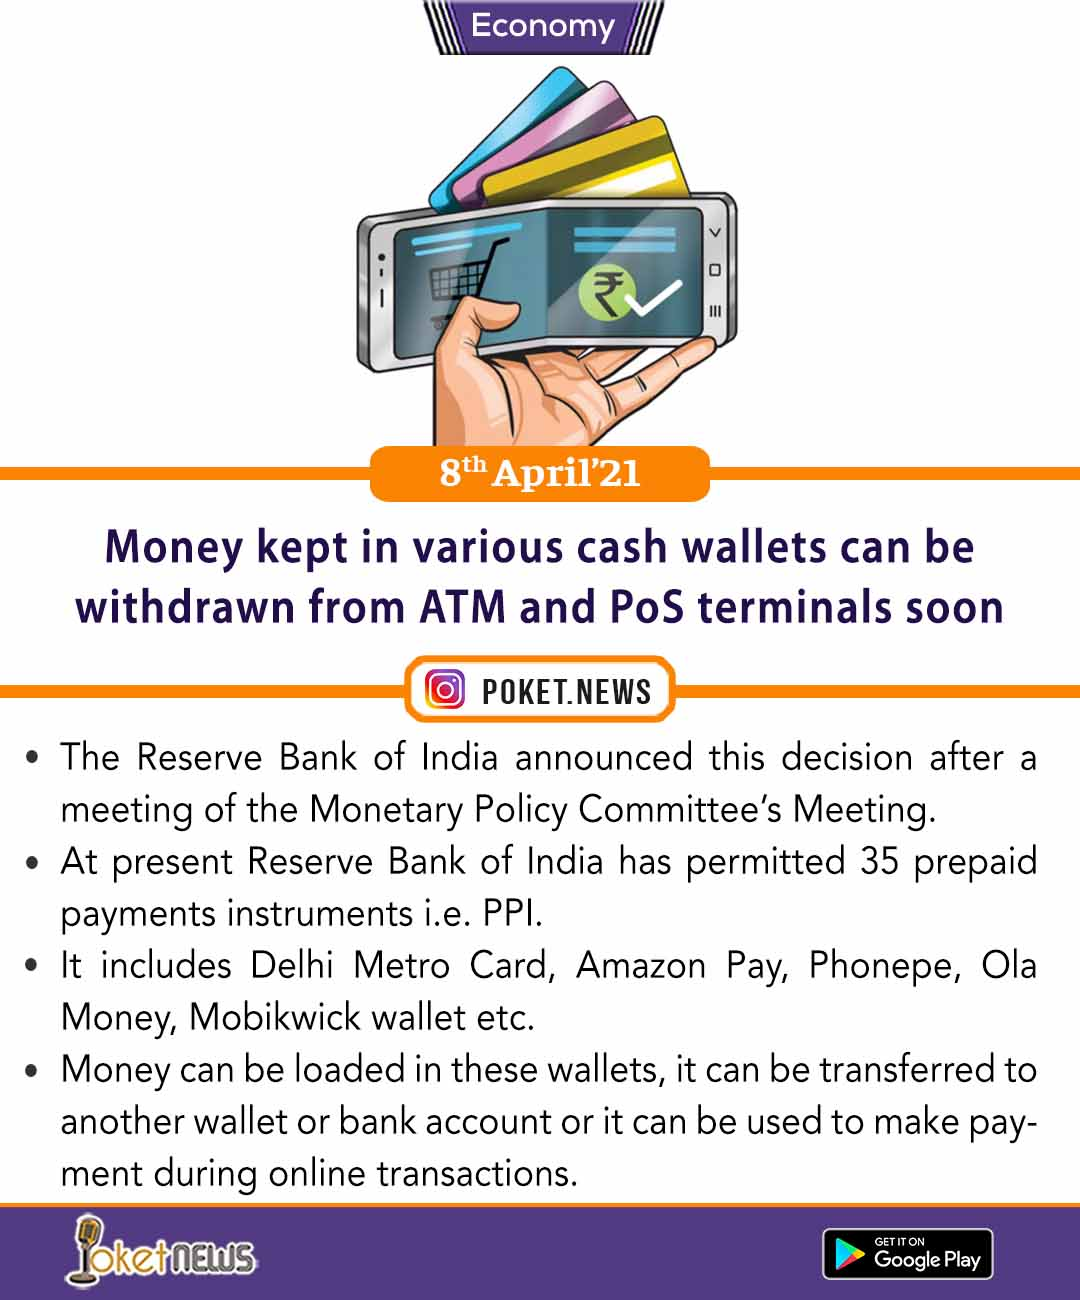 Money kept in various cash wallets can be withdrawn from ATM and PoS terminals soon